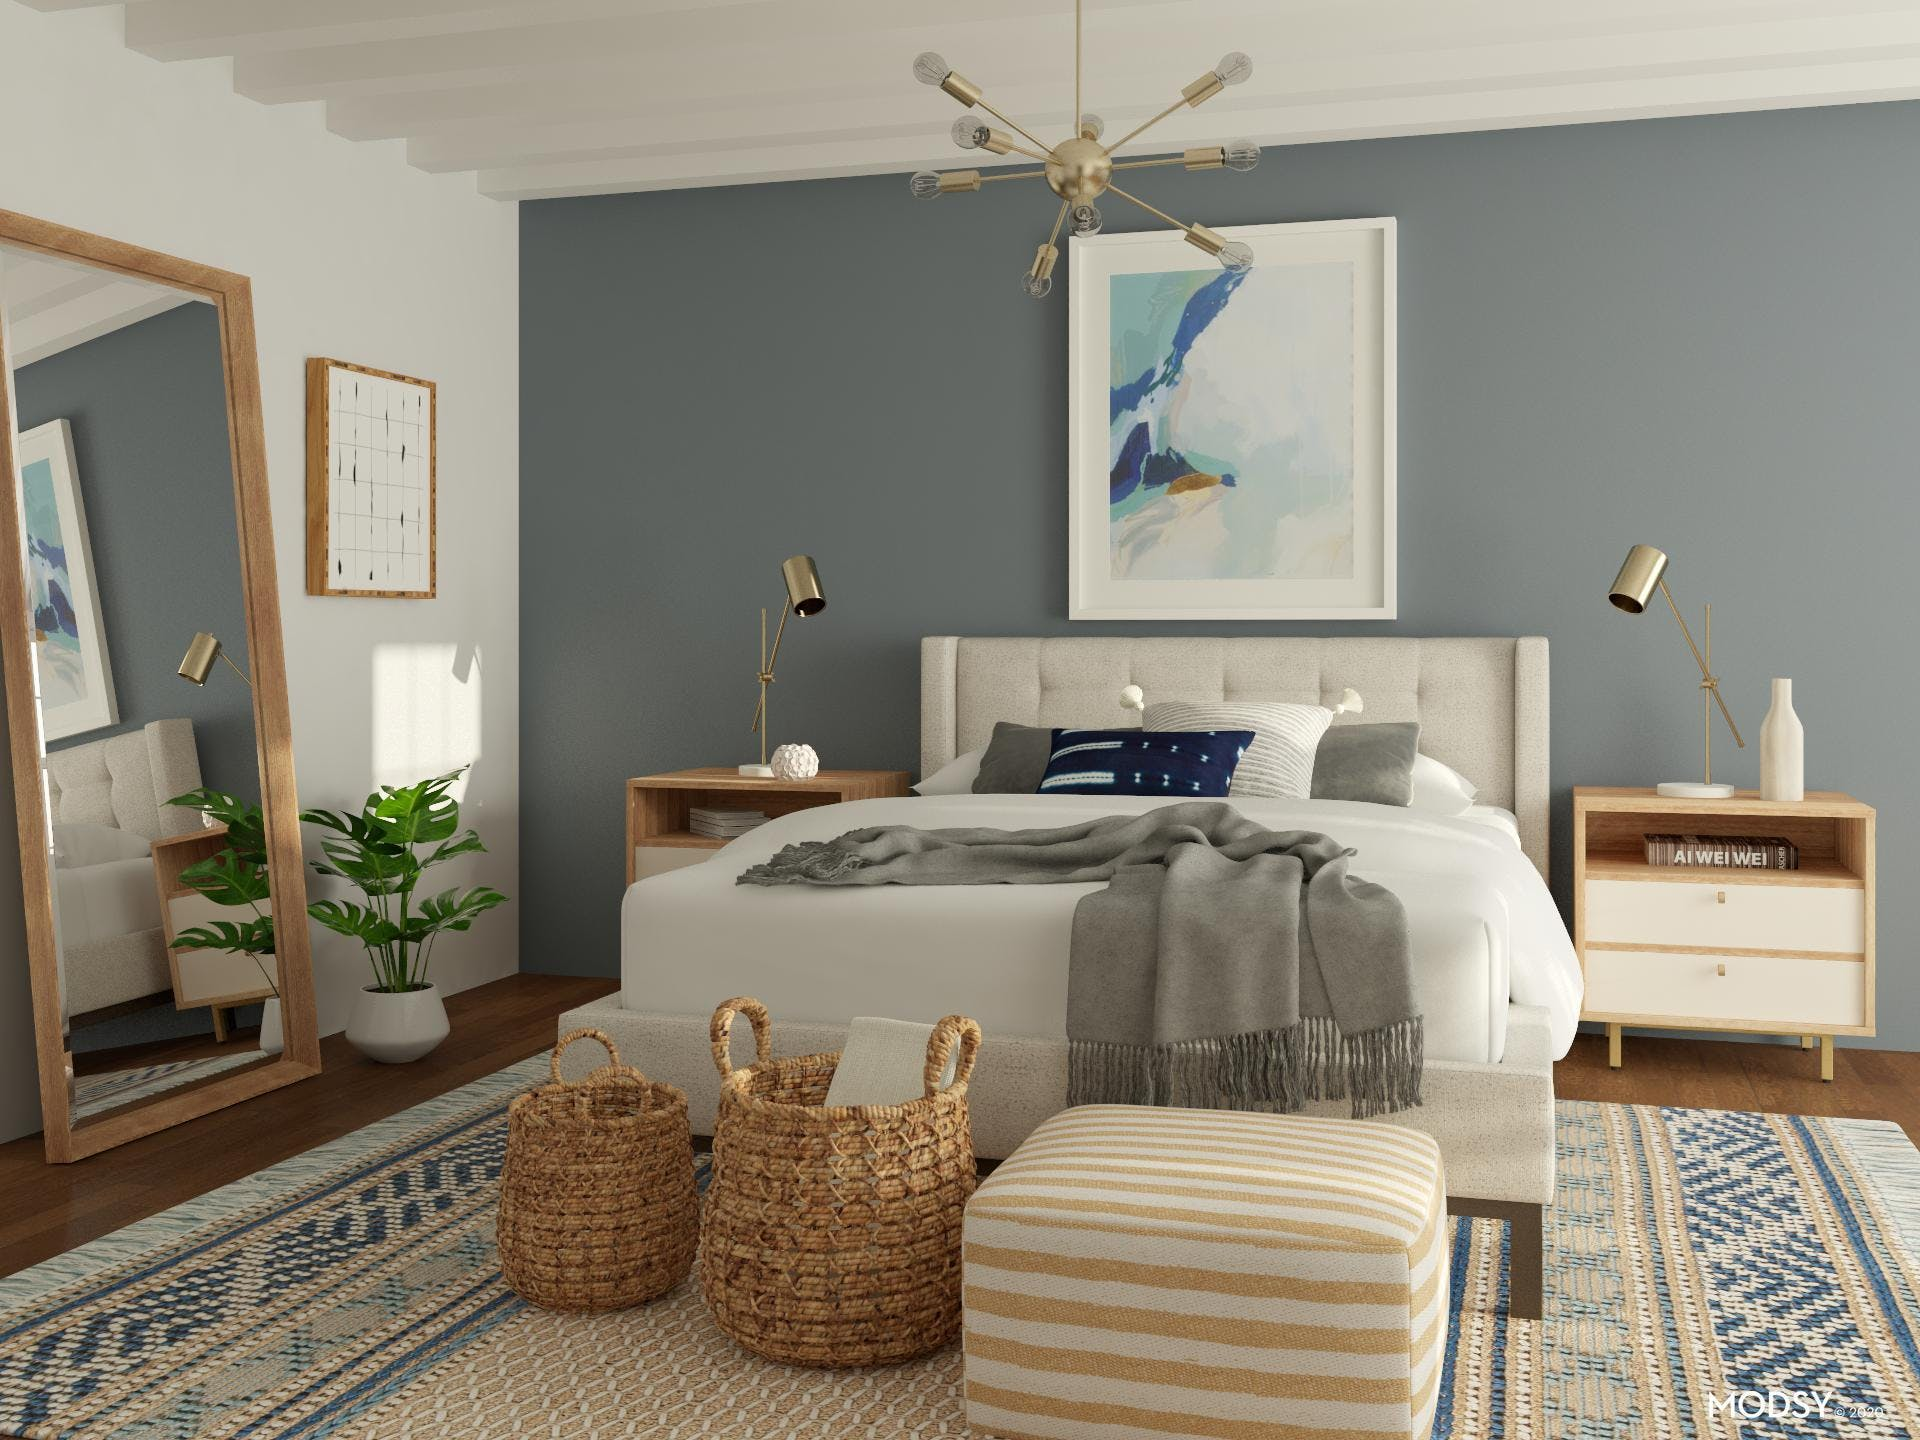 Mid-Century-Modern Bedroom with a California Casual Vibe